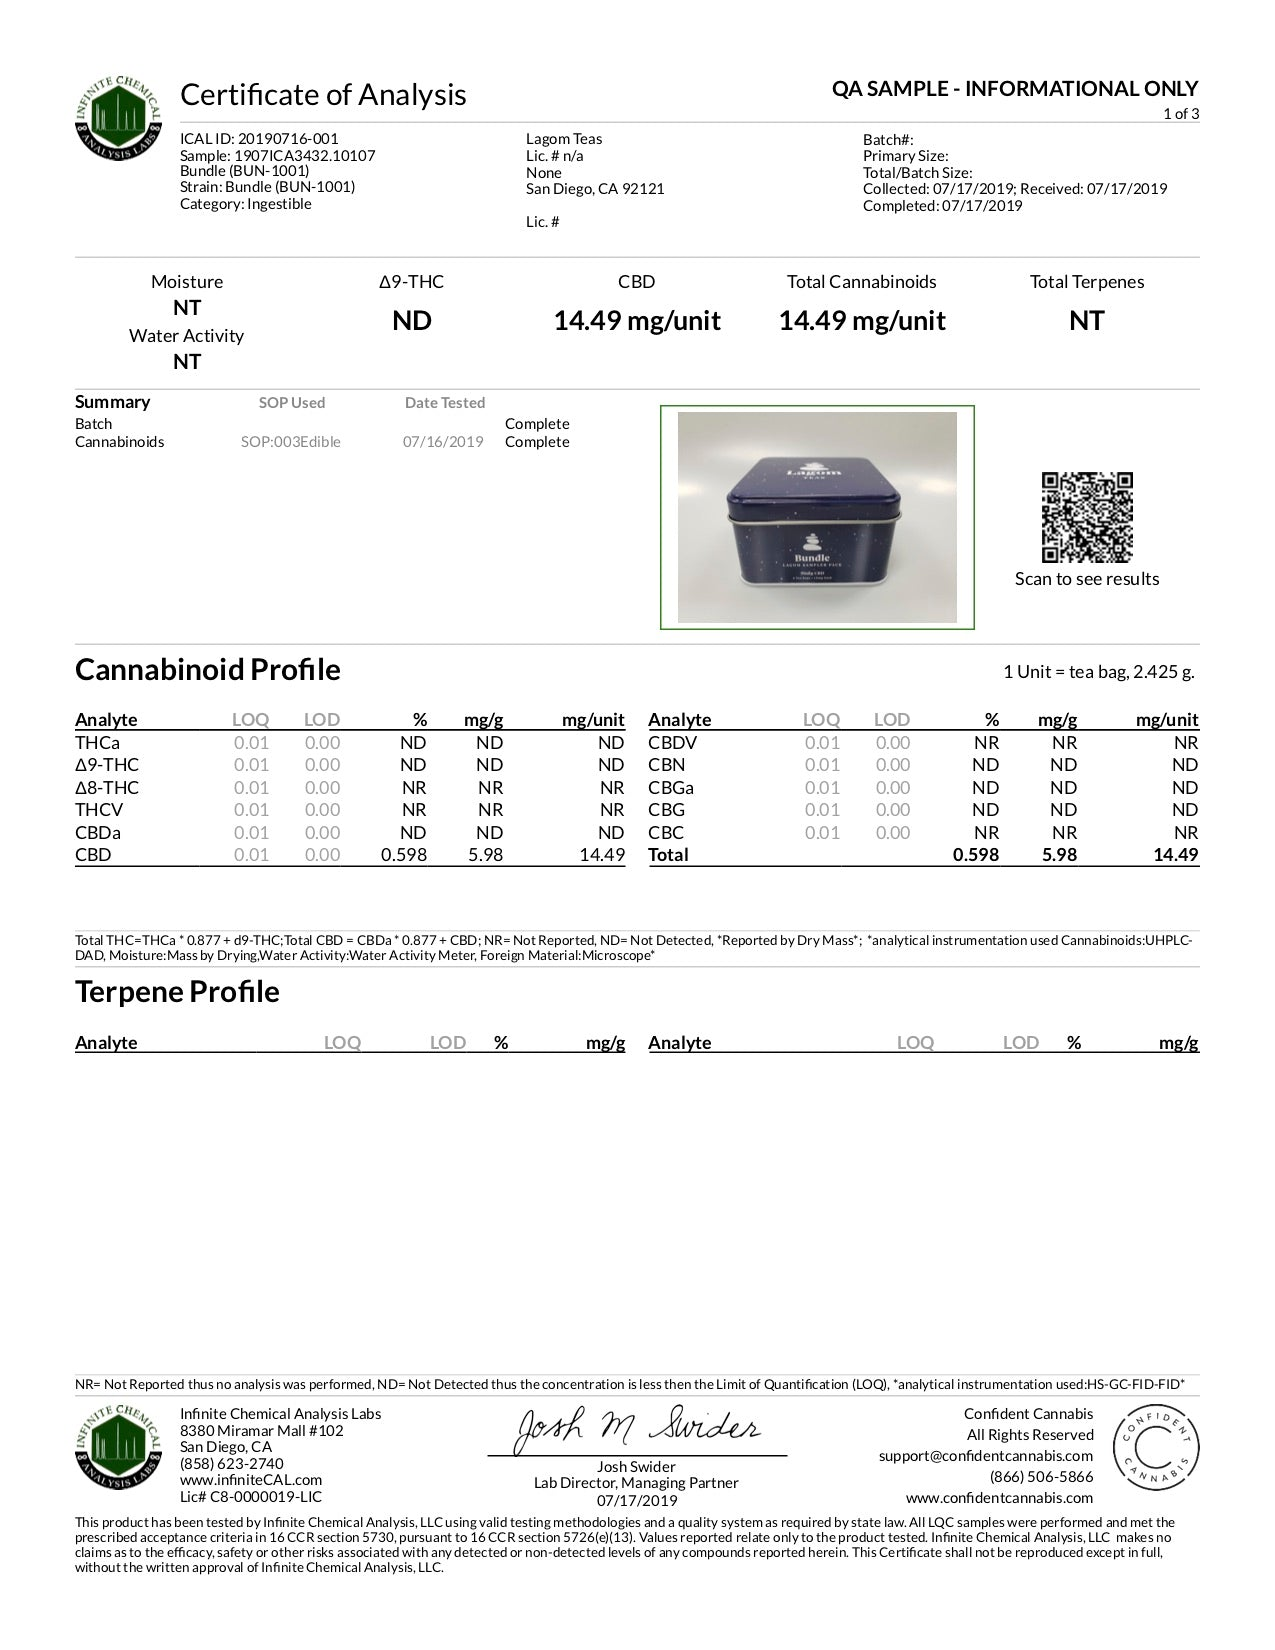 Lagom CBD tea lab test result report